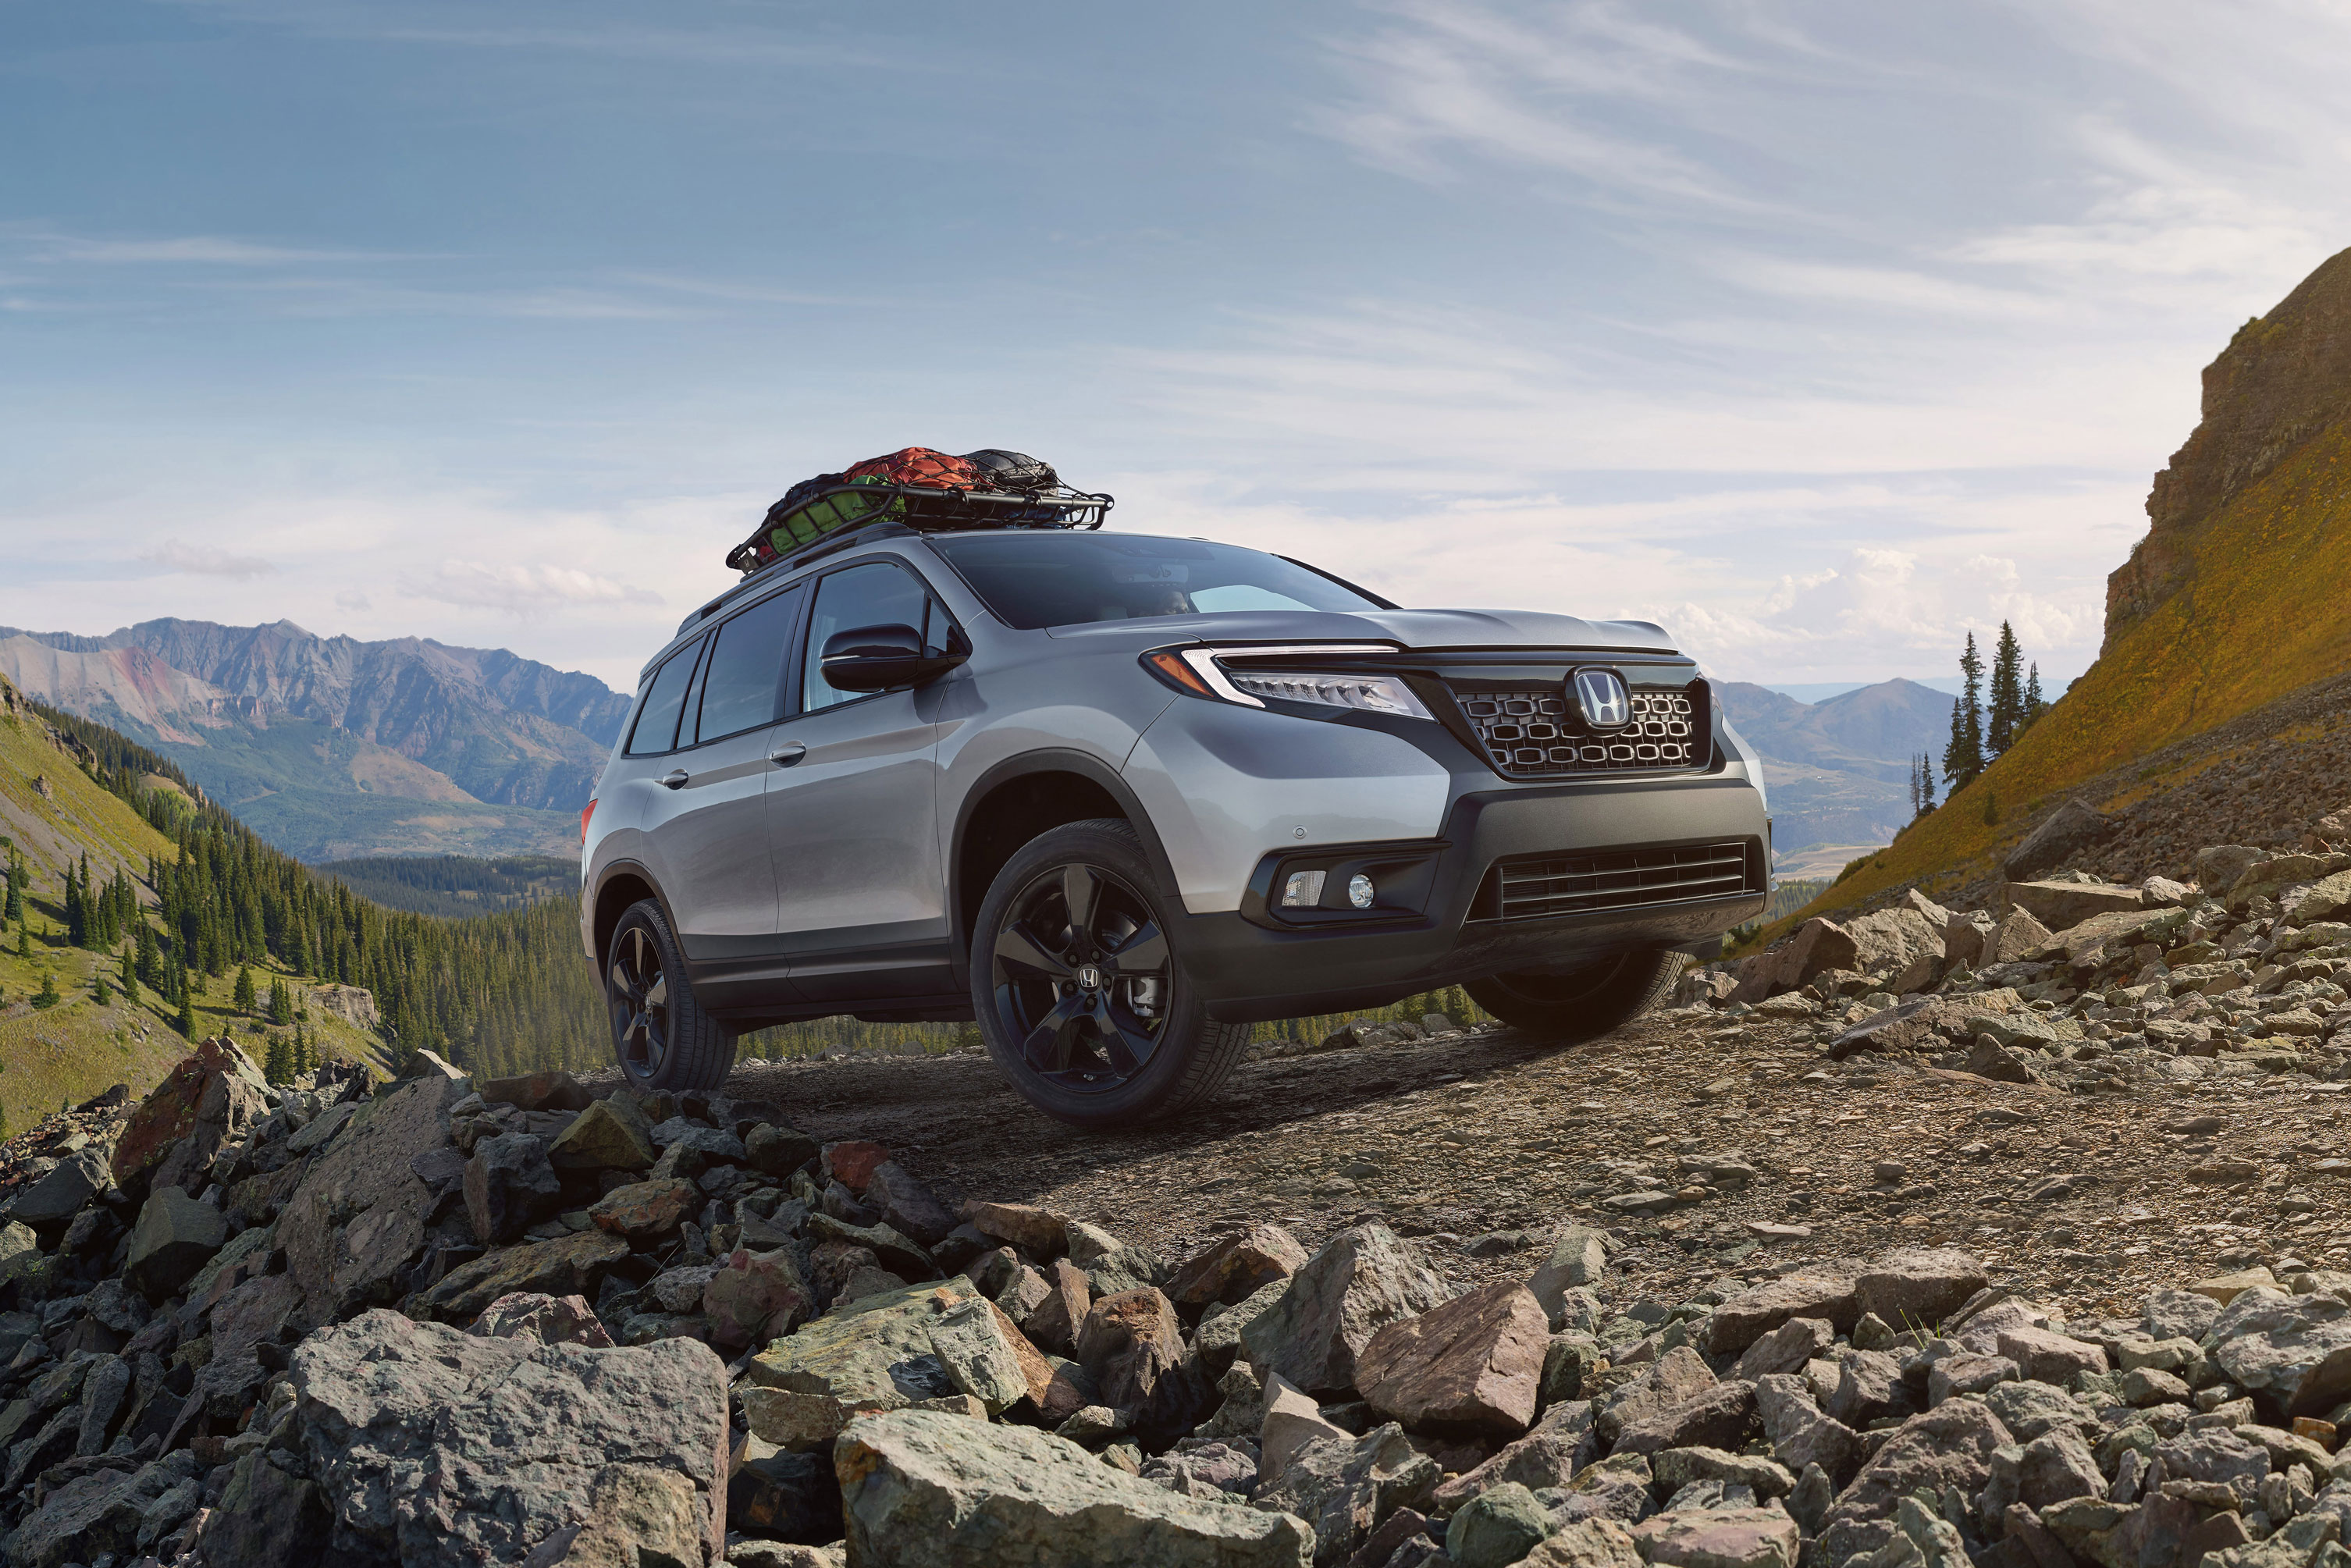 2019 Honda Passport with accessory roof rack